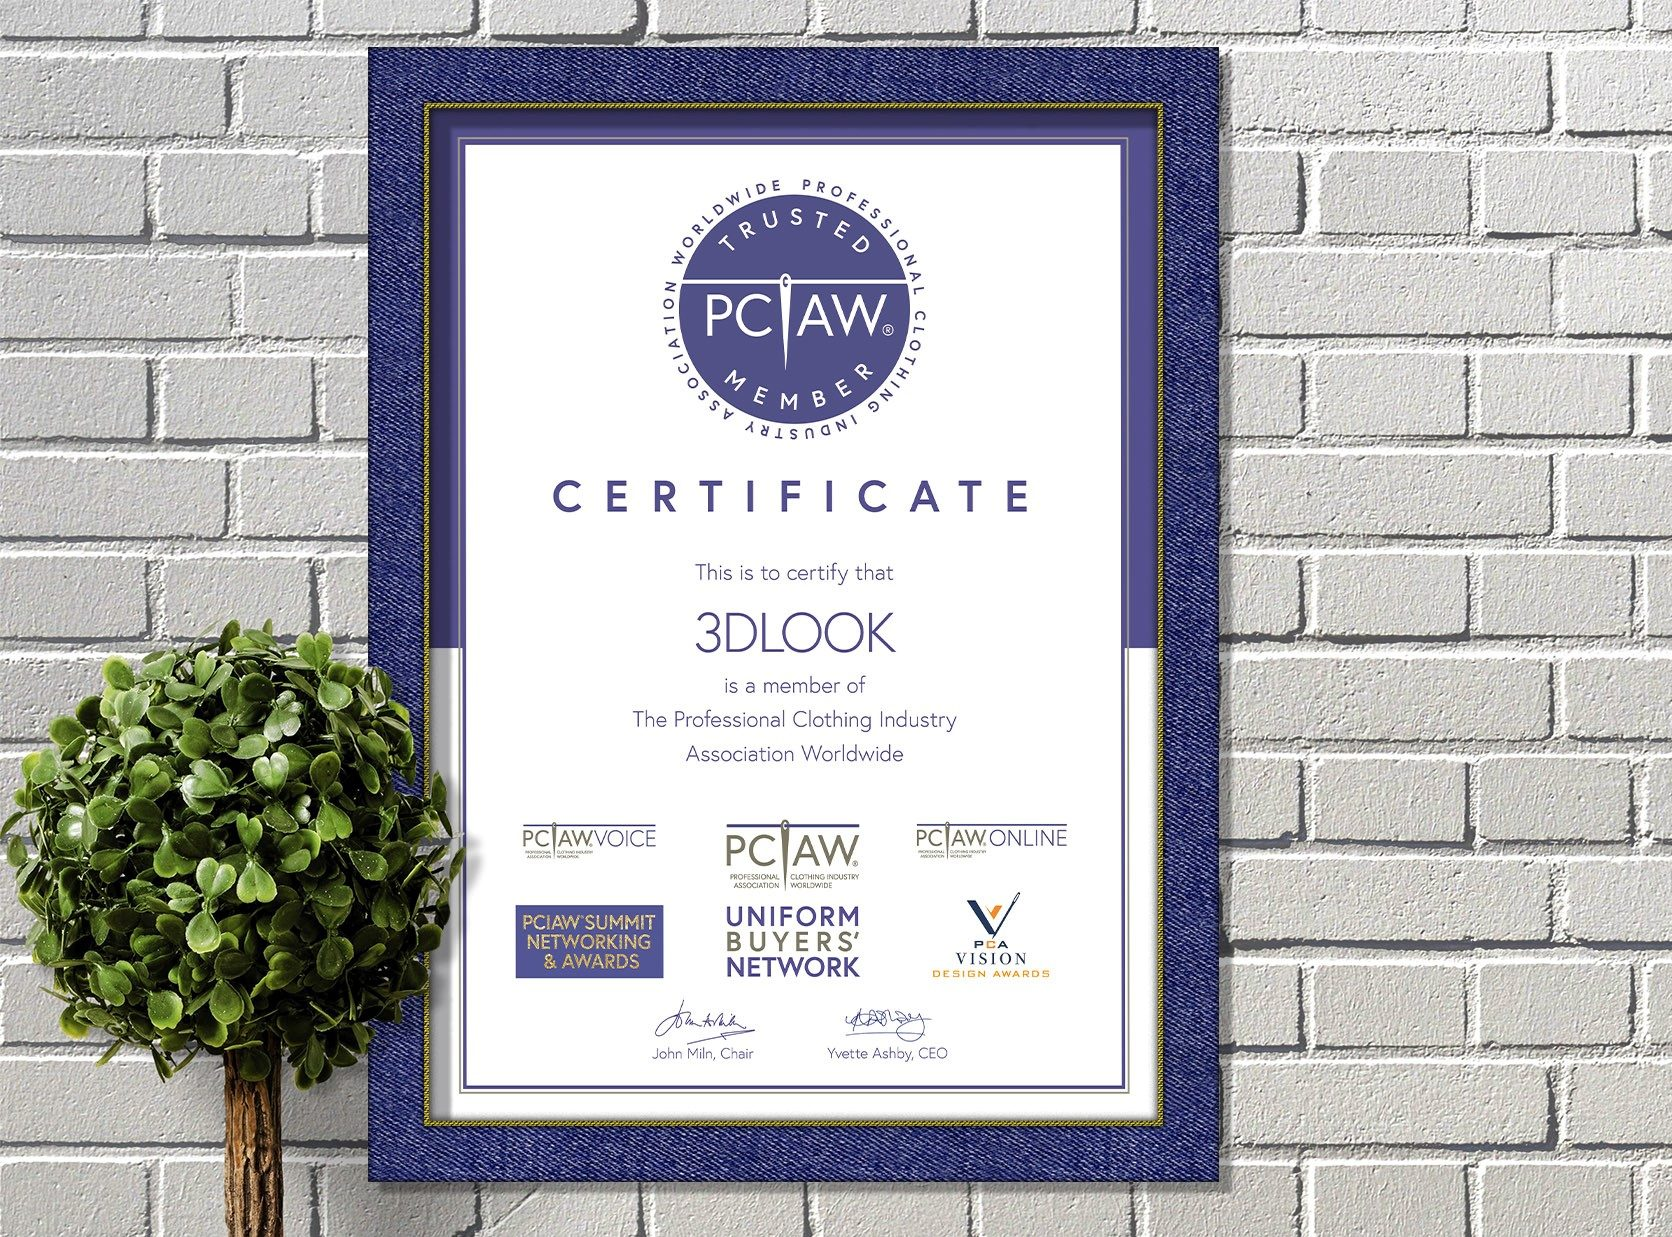 The PCIAW® is proud to include 3DLOOK, the trailblazing body scanning company, as a PCIAW® Trusted Member.